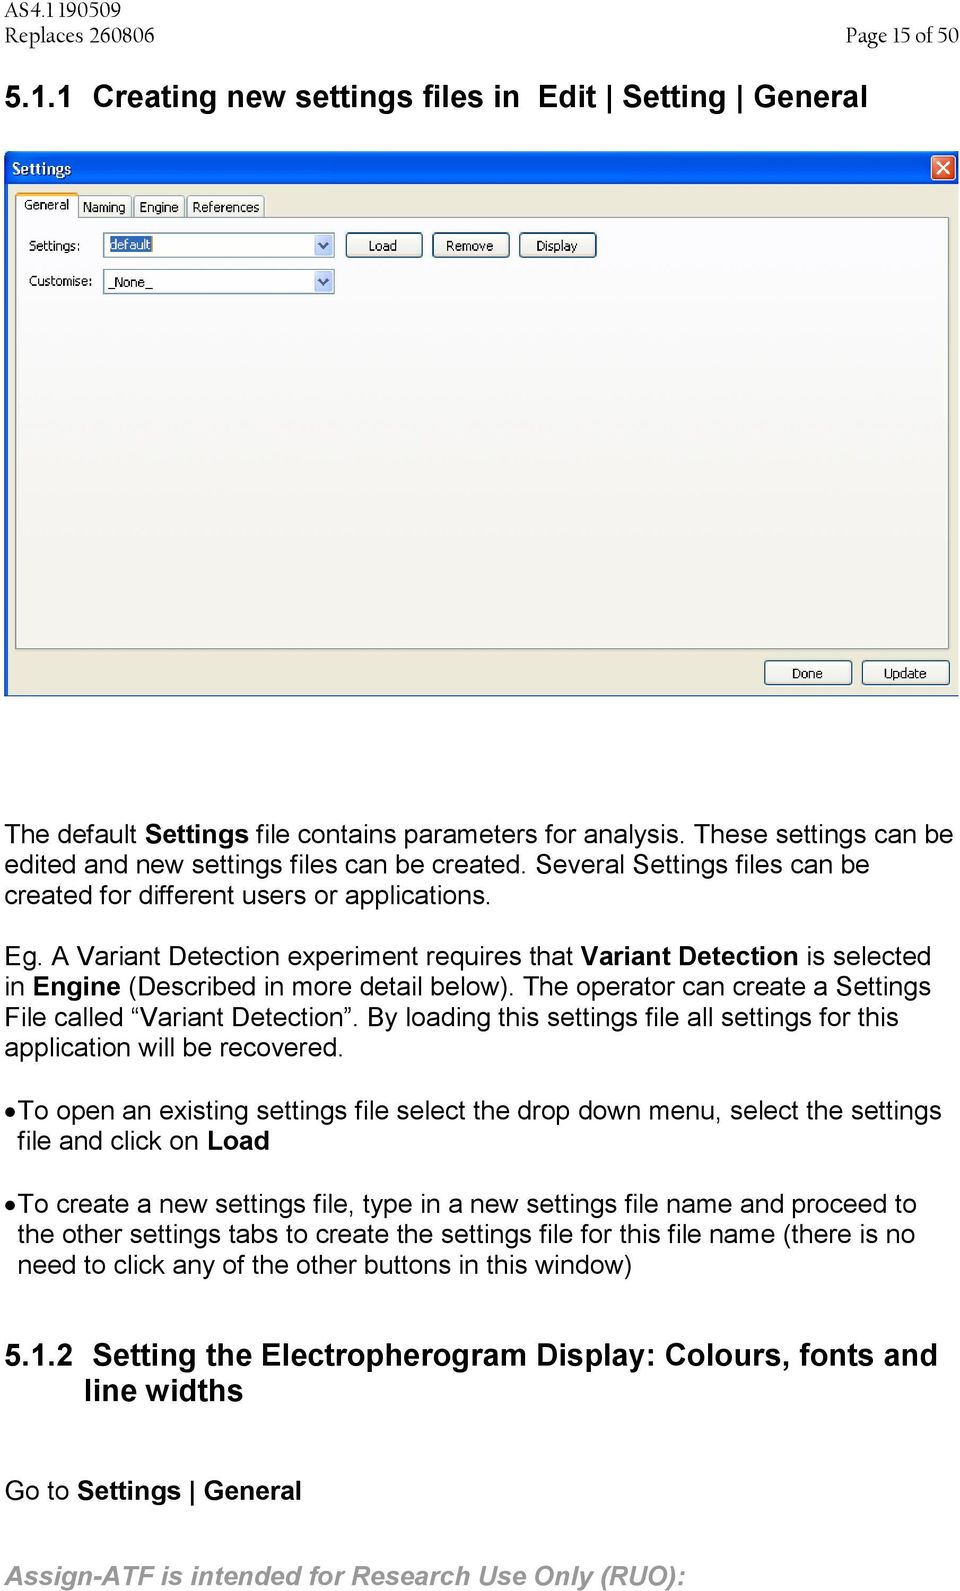 A Variant Detection experiment requires that Variant Detection is selected in Engine (Described in more detail below). The operator can create a Settings File called Variant Detection.